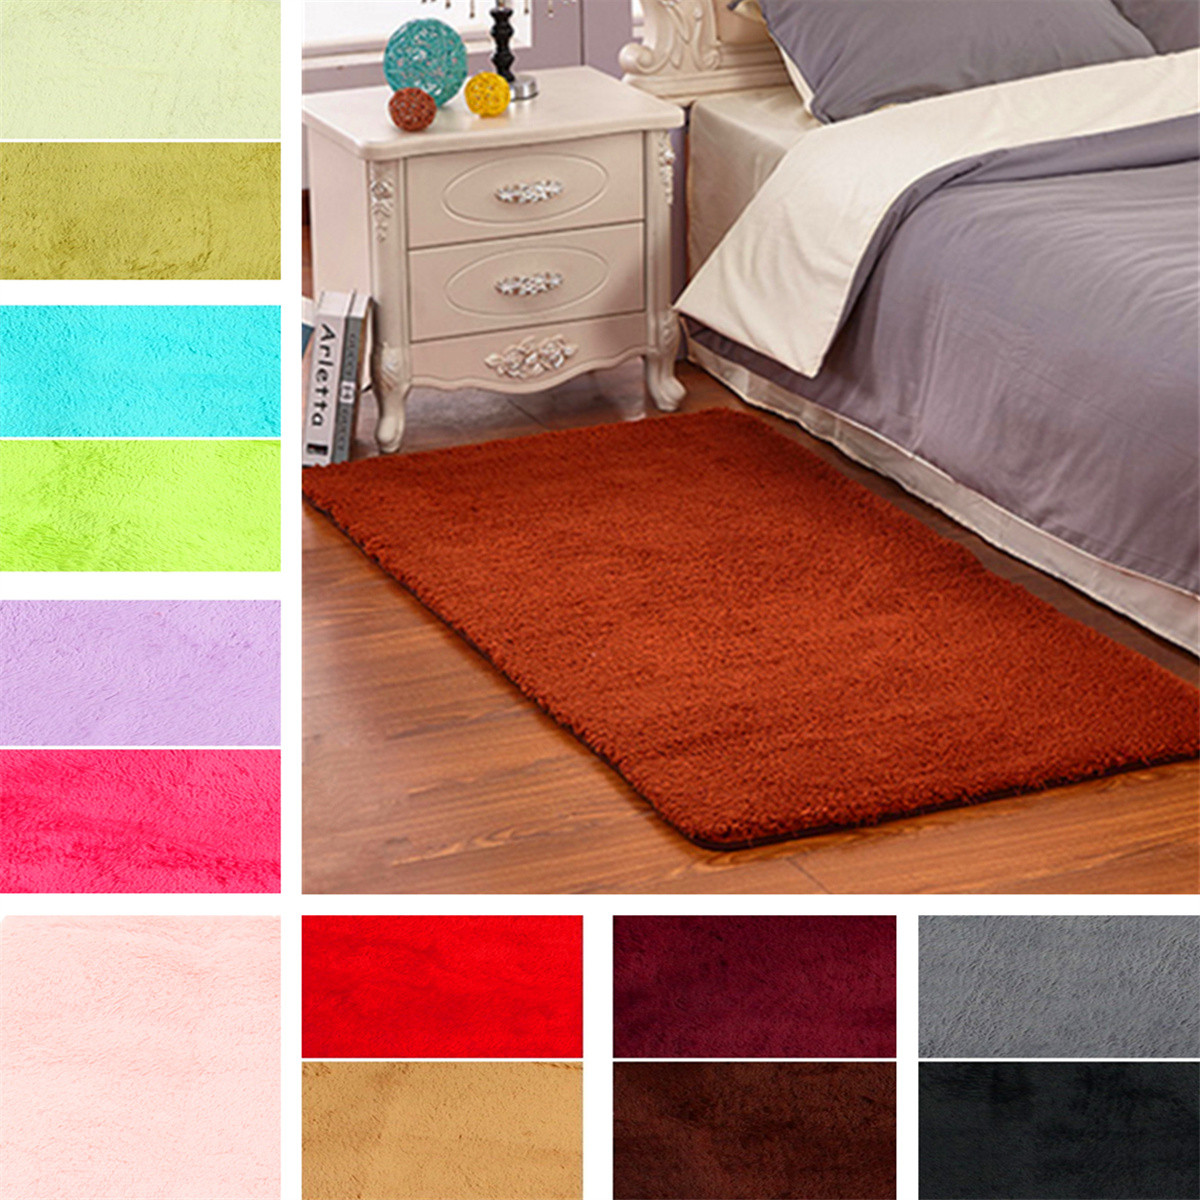 60 X 120cm Anti-skid Shaggy Fluffy Area Rug Bedroom Carpet